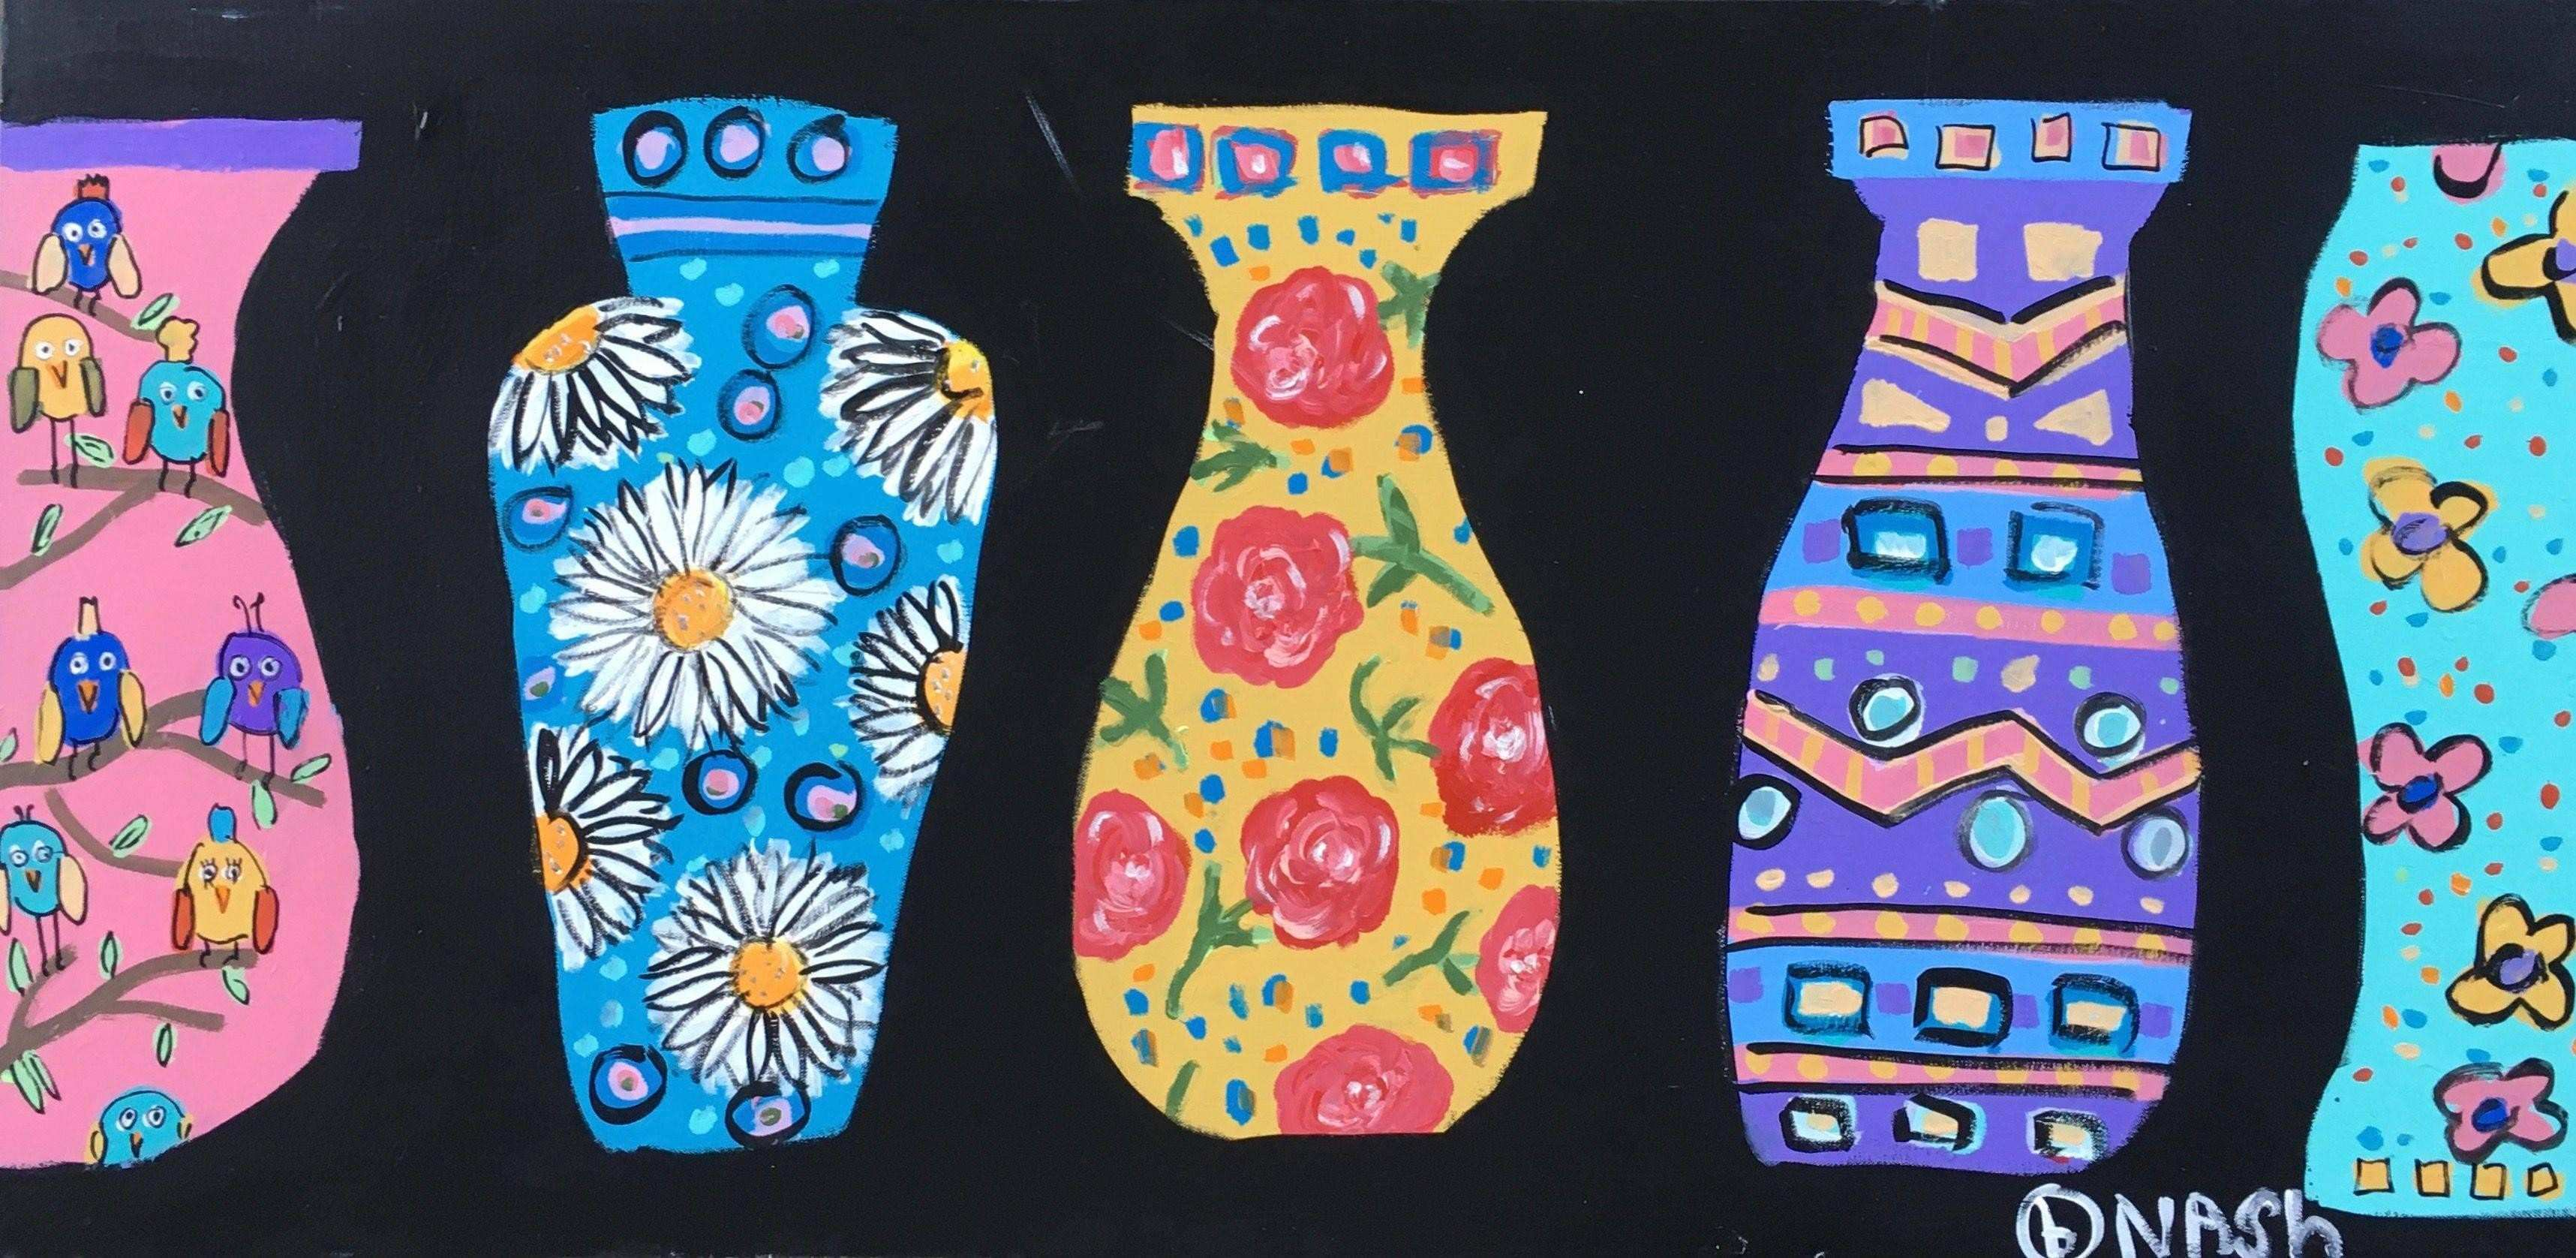 Brian Nash Vases Acrylic Painting on Canvas Painting For Sale at